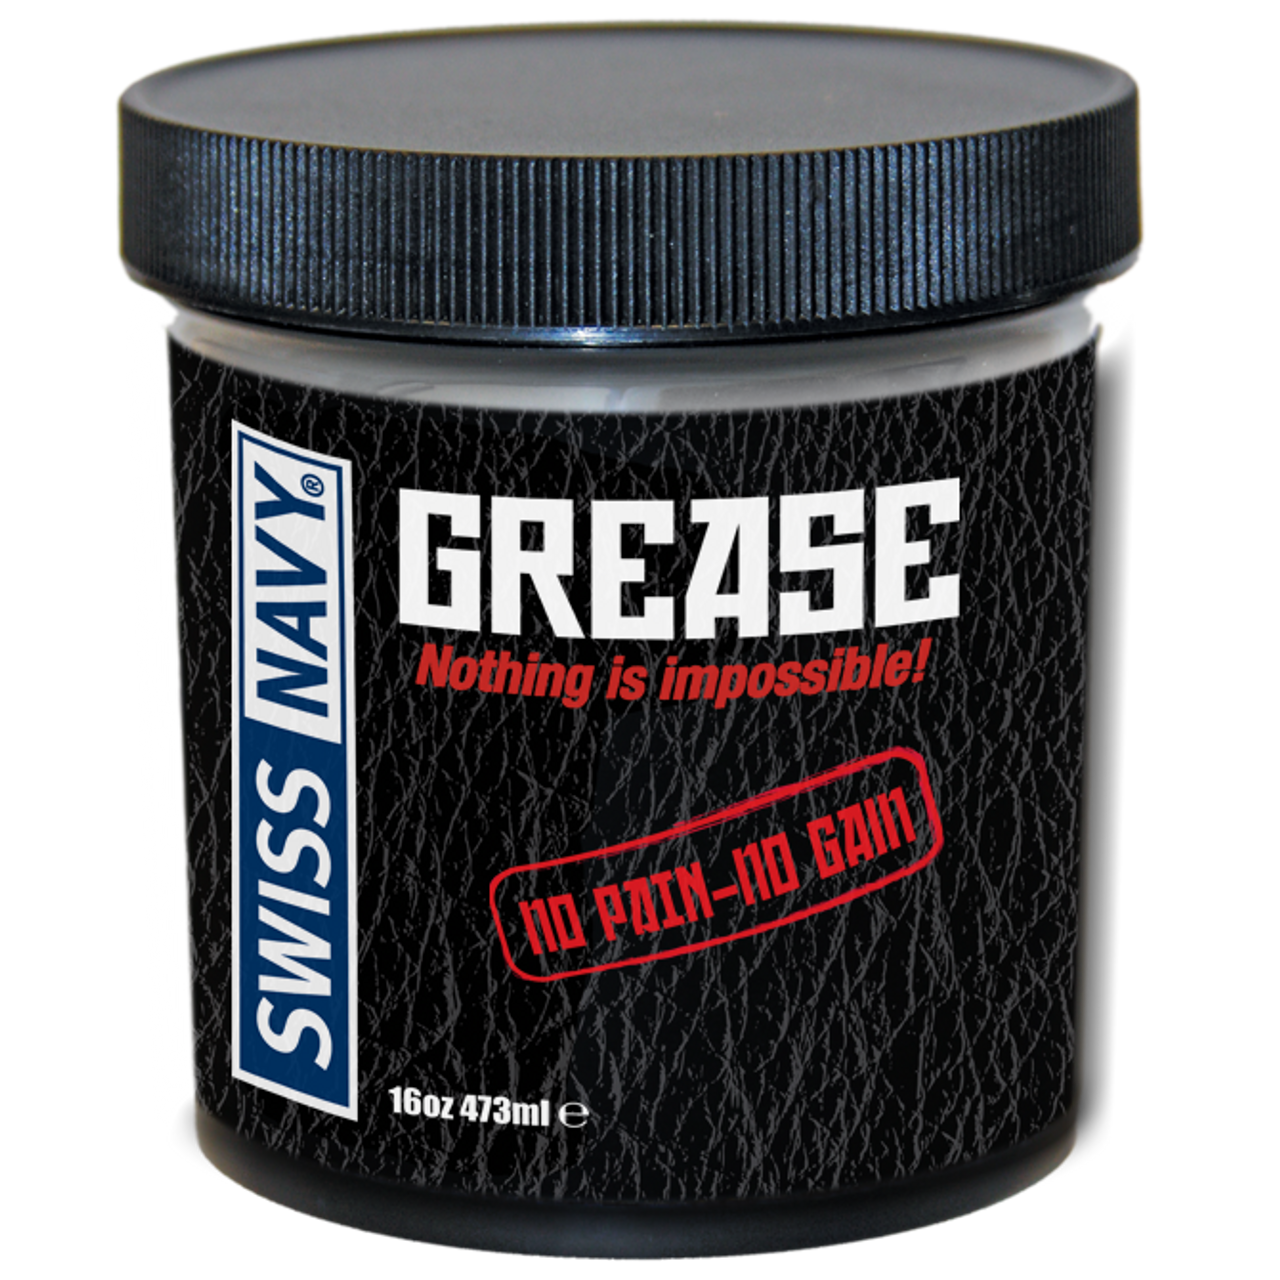 GREASE 16oz Swiss Navy